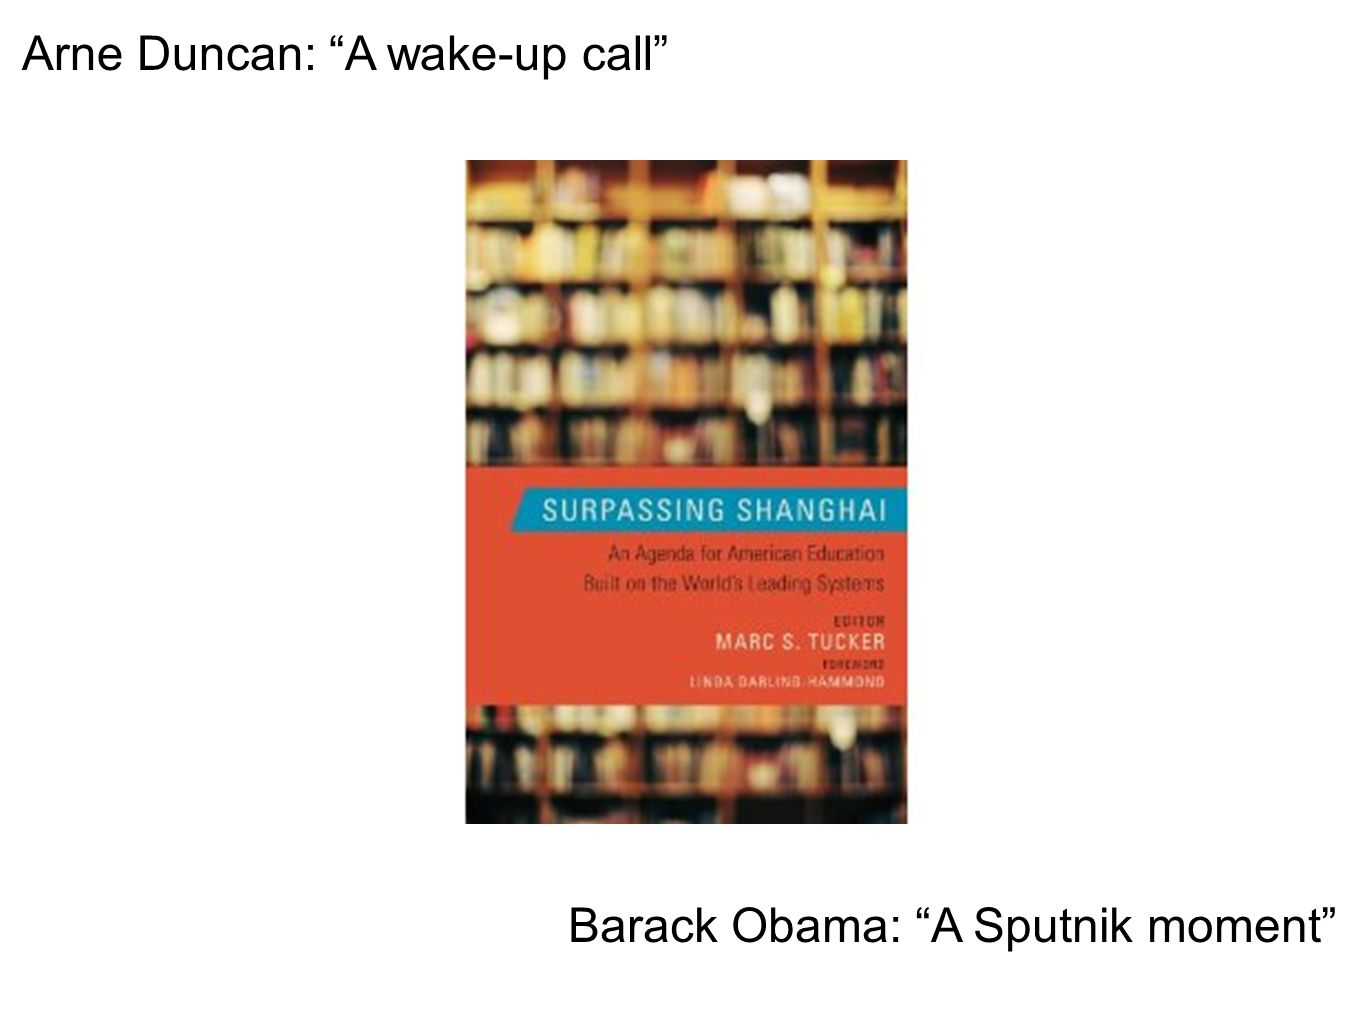 Arne Duncan: A wake-up call